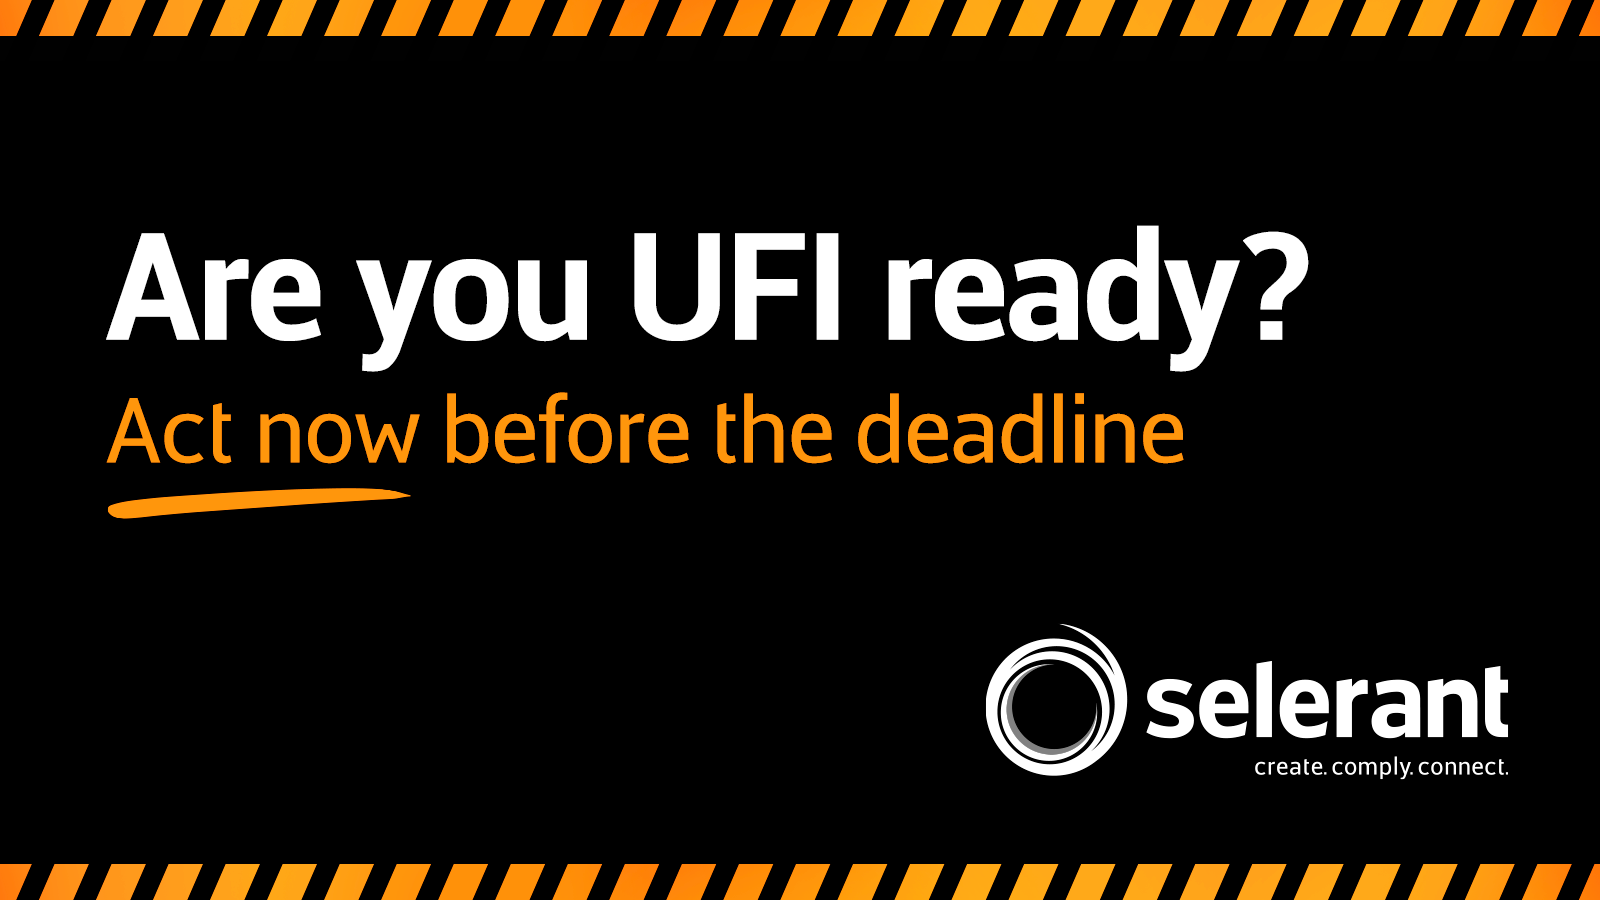 Are you UFI ready? Act now before the deadline.